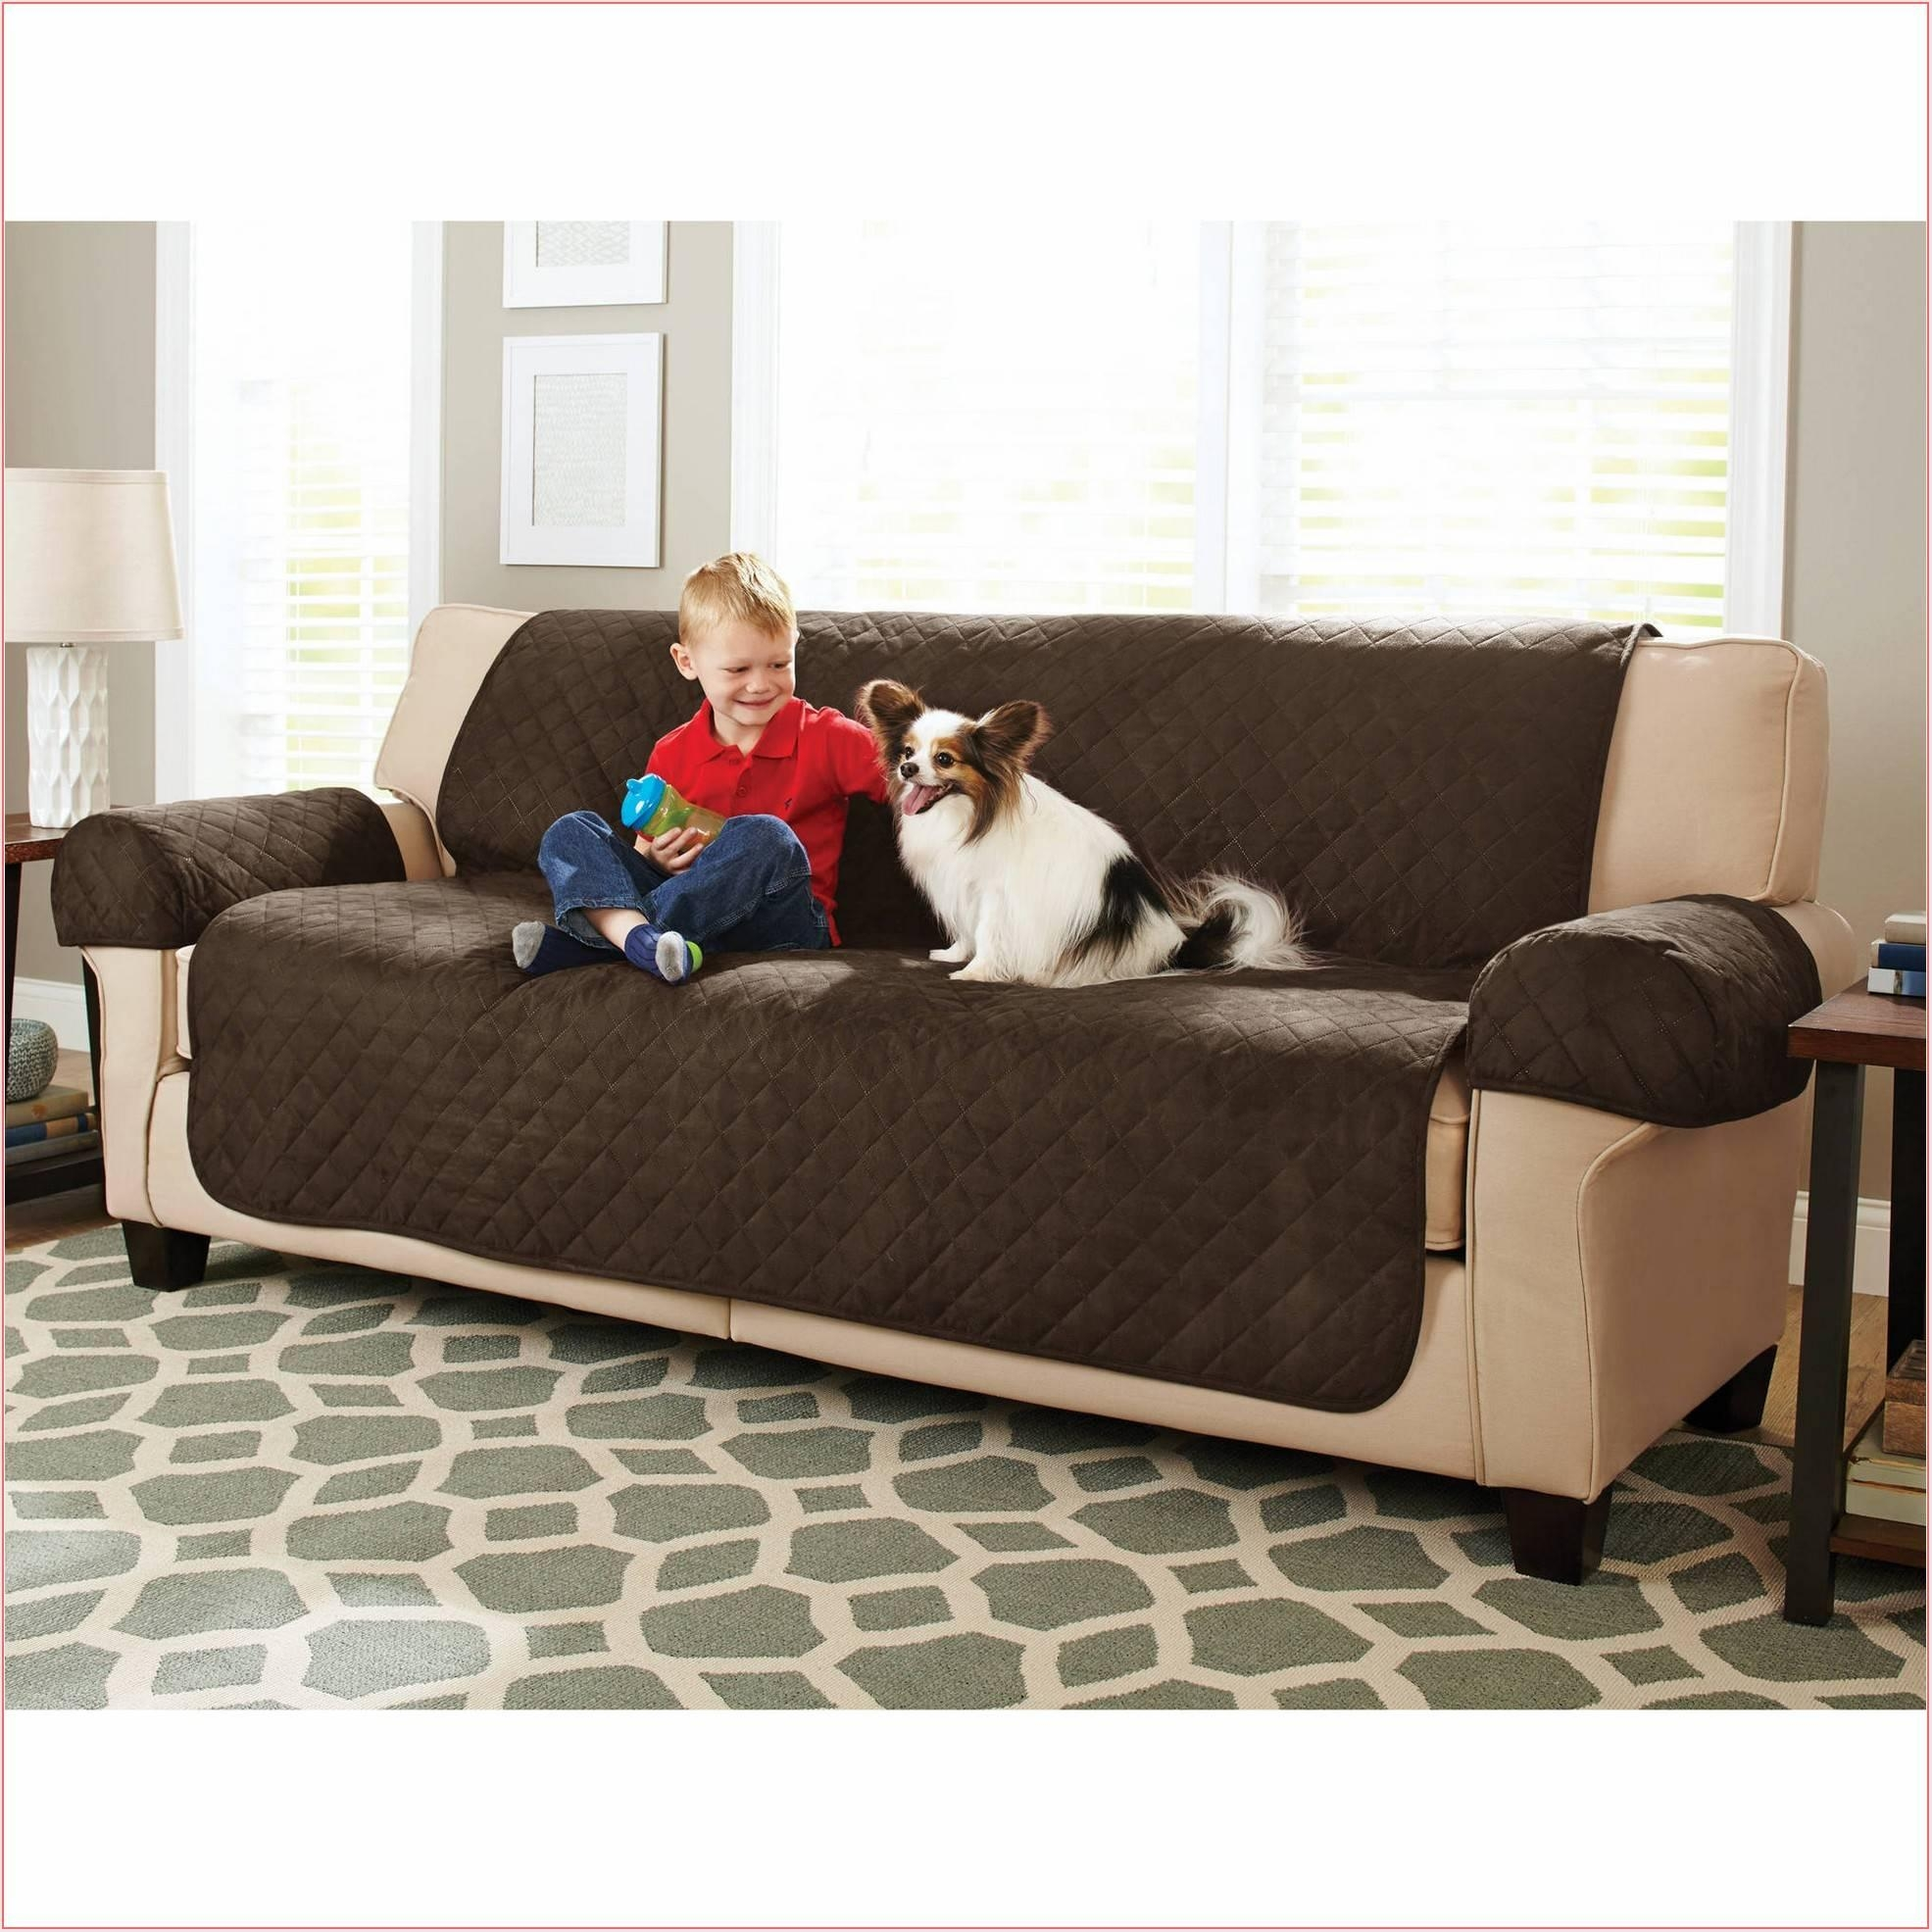 Good Cat Proof Sofa 54 For Sofas And Couches Ideas With Cat Proof Sofa With Regard To Cat Proof Sofas (View 6 of 20)